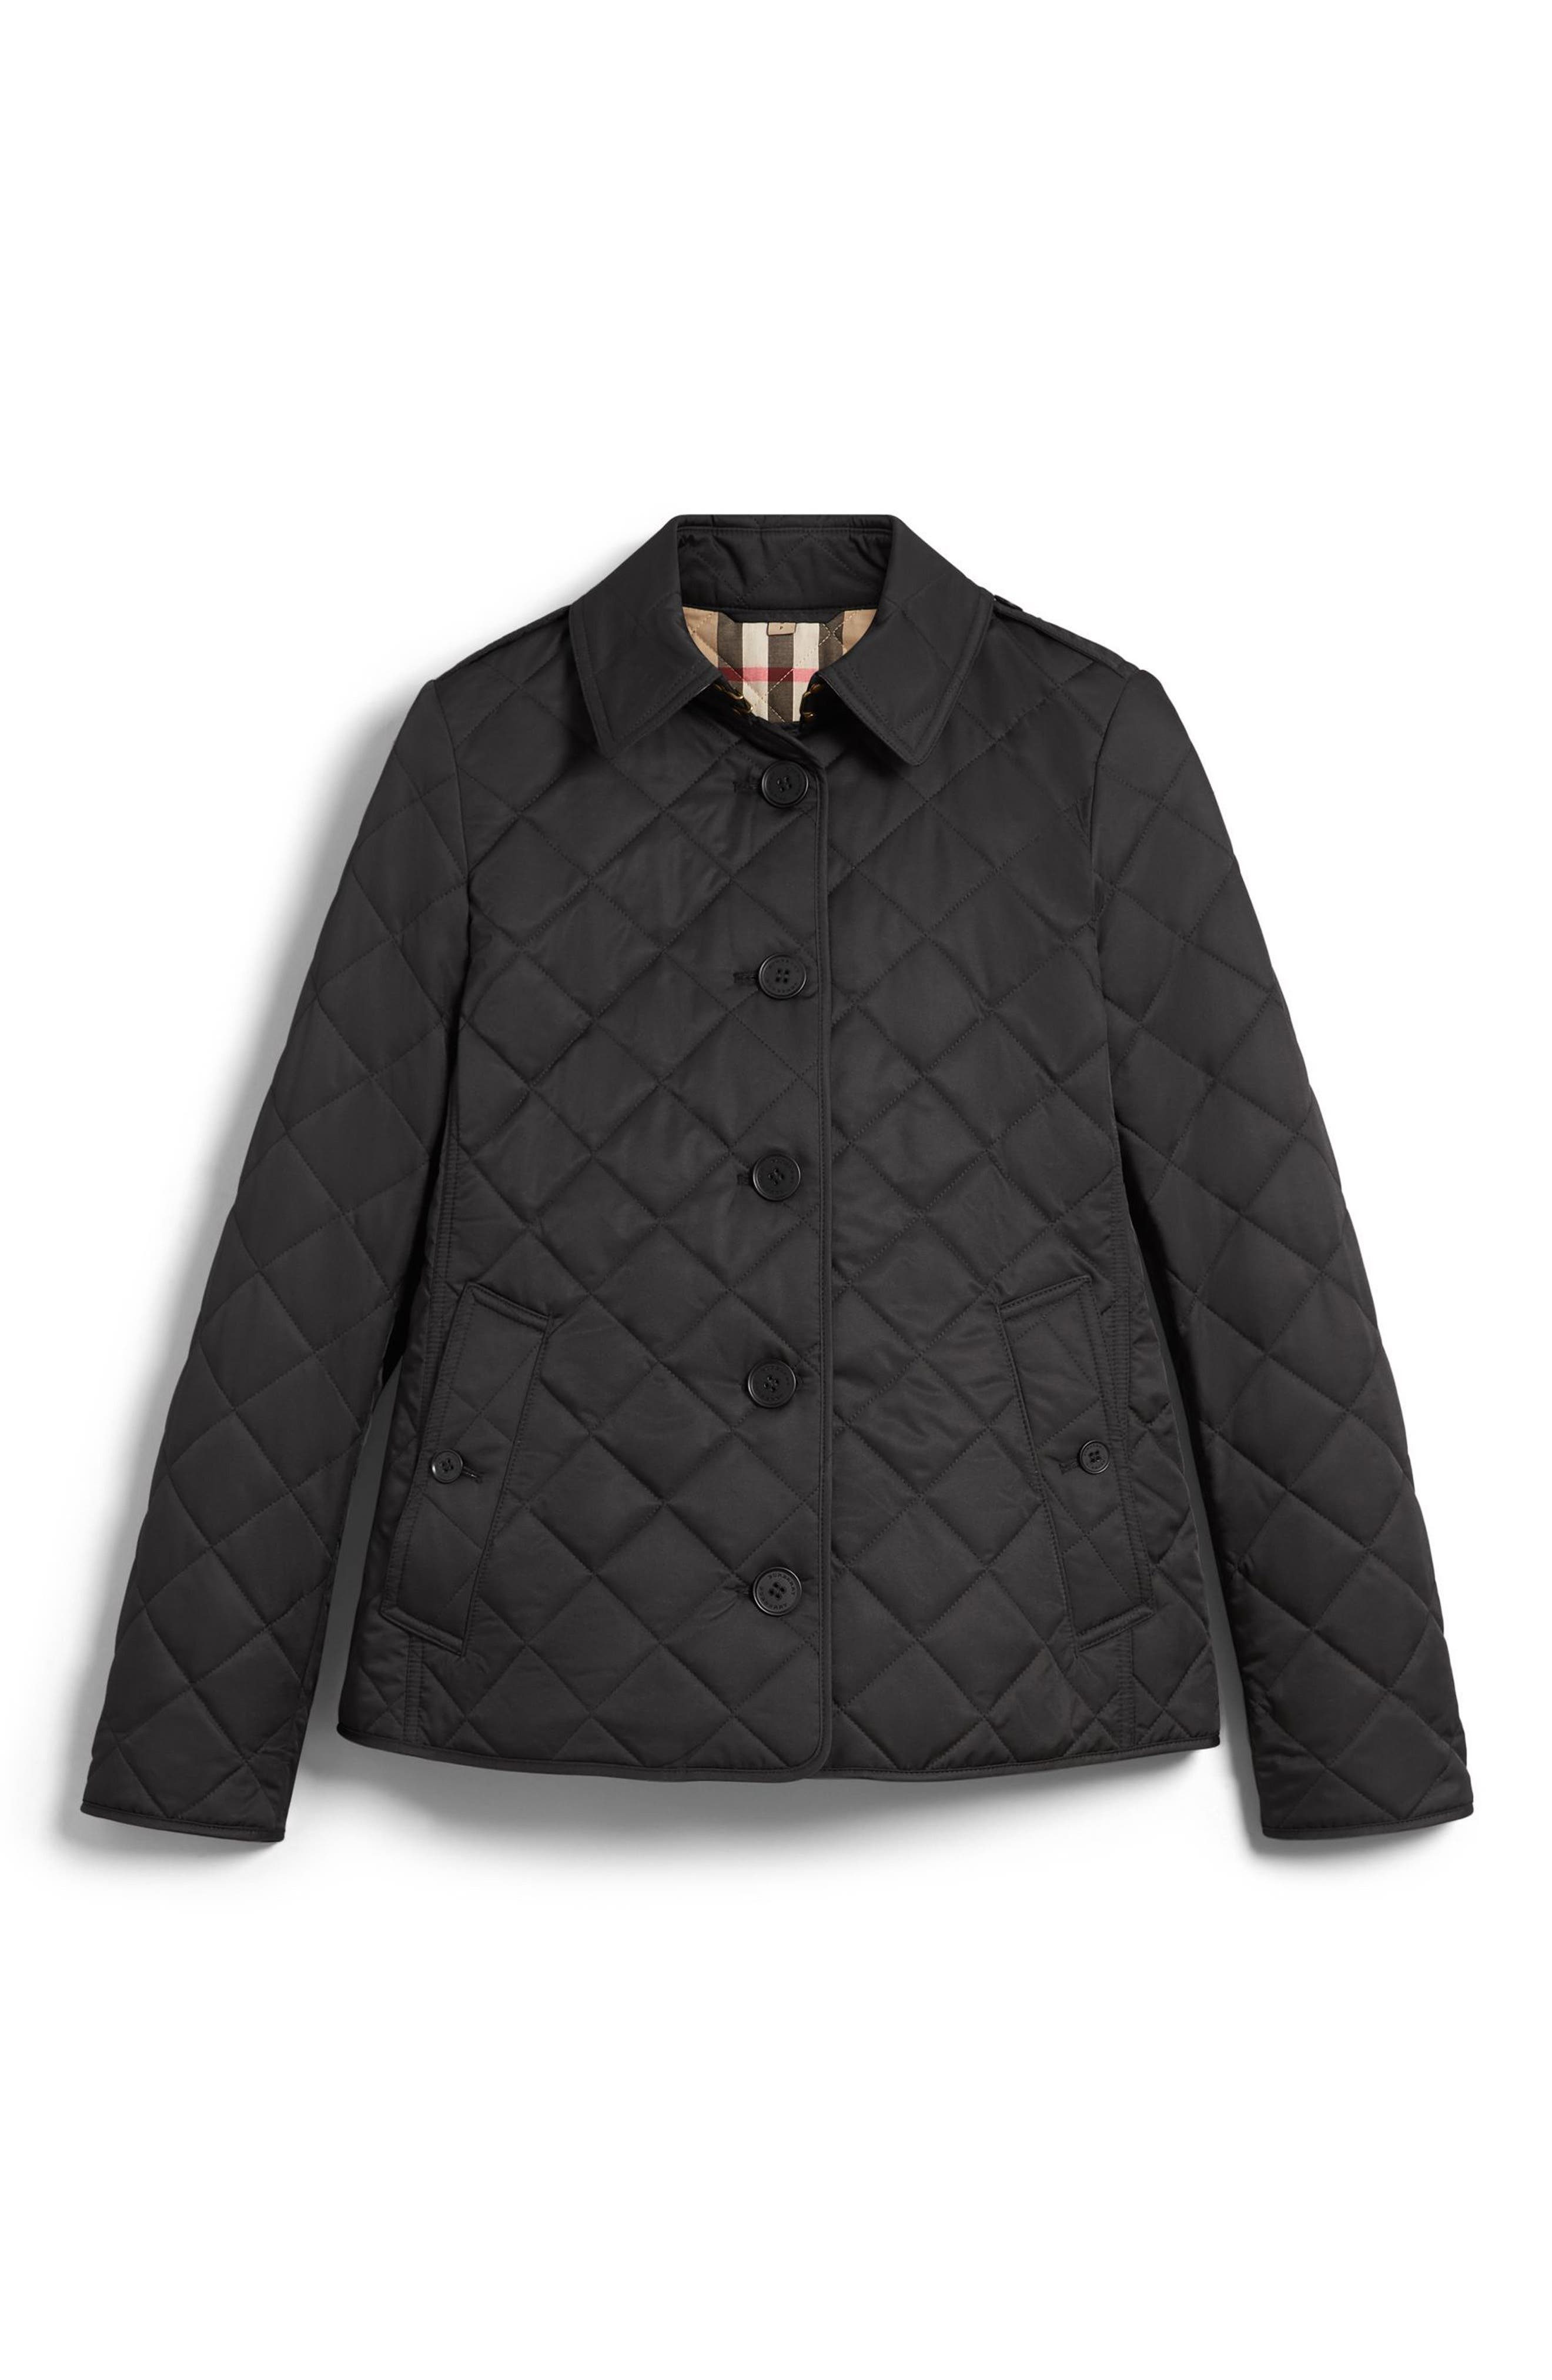 BURBERRY, Frankby Quilted Jacket, Alternate thumbnail 5, color, 001